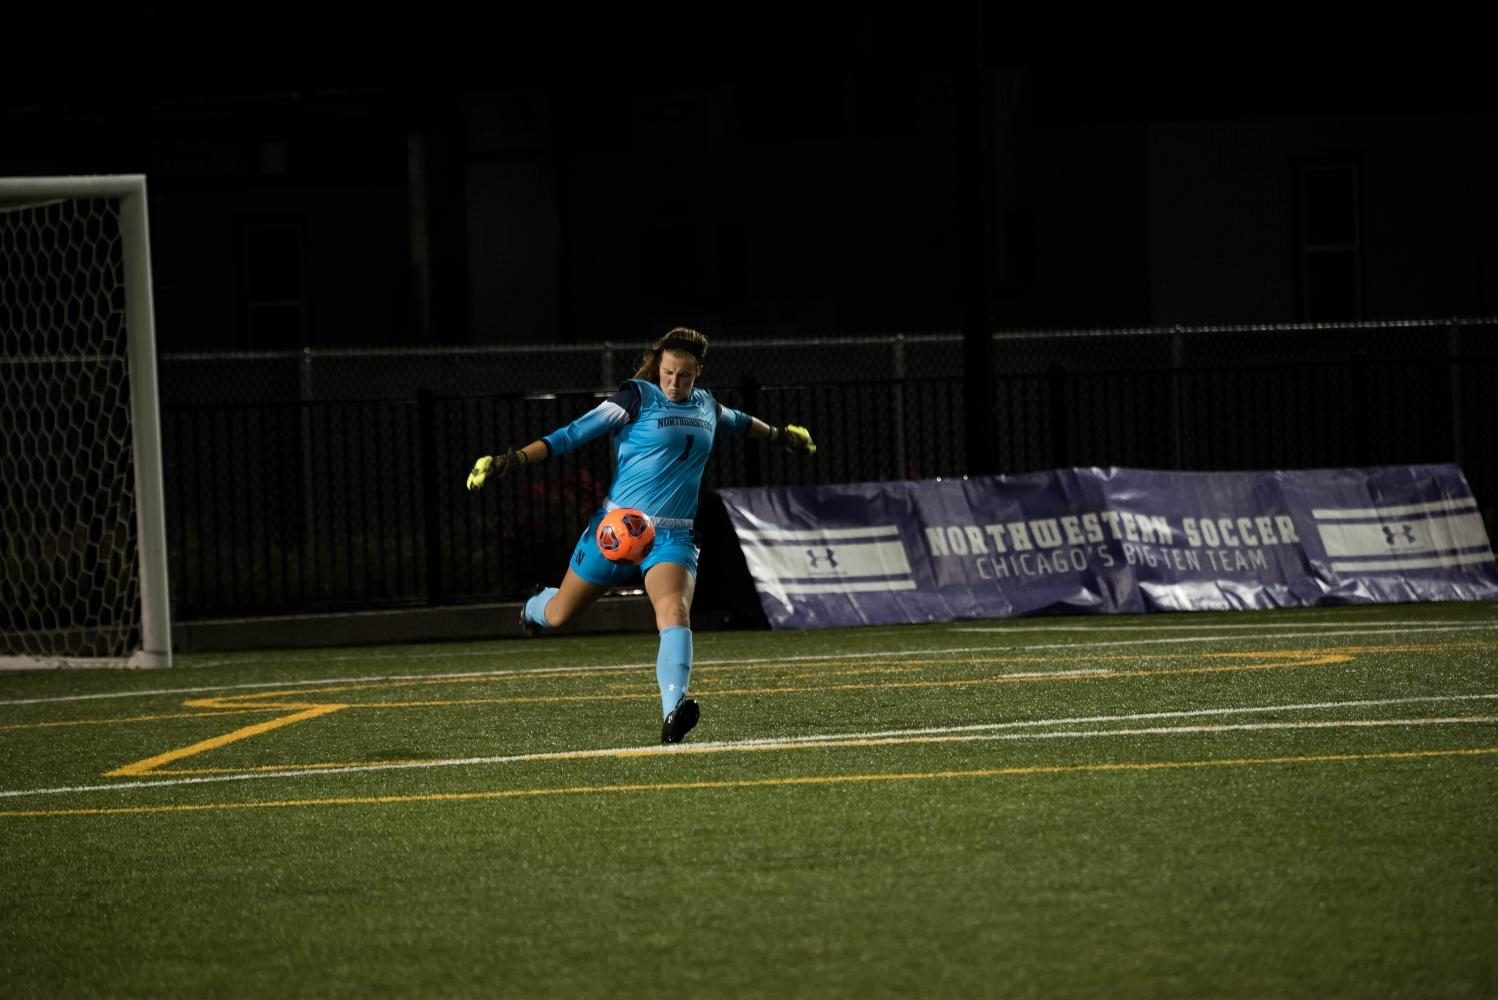 Lauren+Clem+kicks+the+ball+upfield.+Through+just+five+games%2C+the+senior+goalkeeper+has+already+allowed+more+goals+than+she+did+all+of+last+year%E2%80%99s+regular+season.+